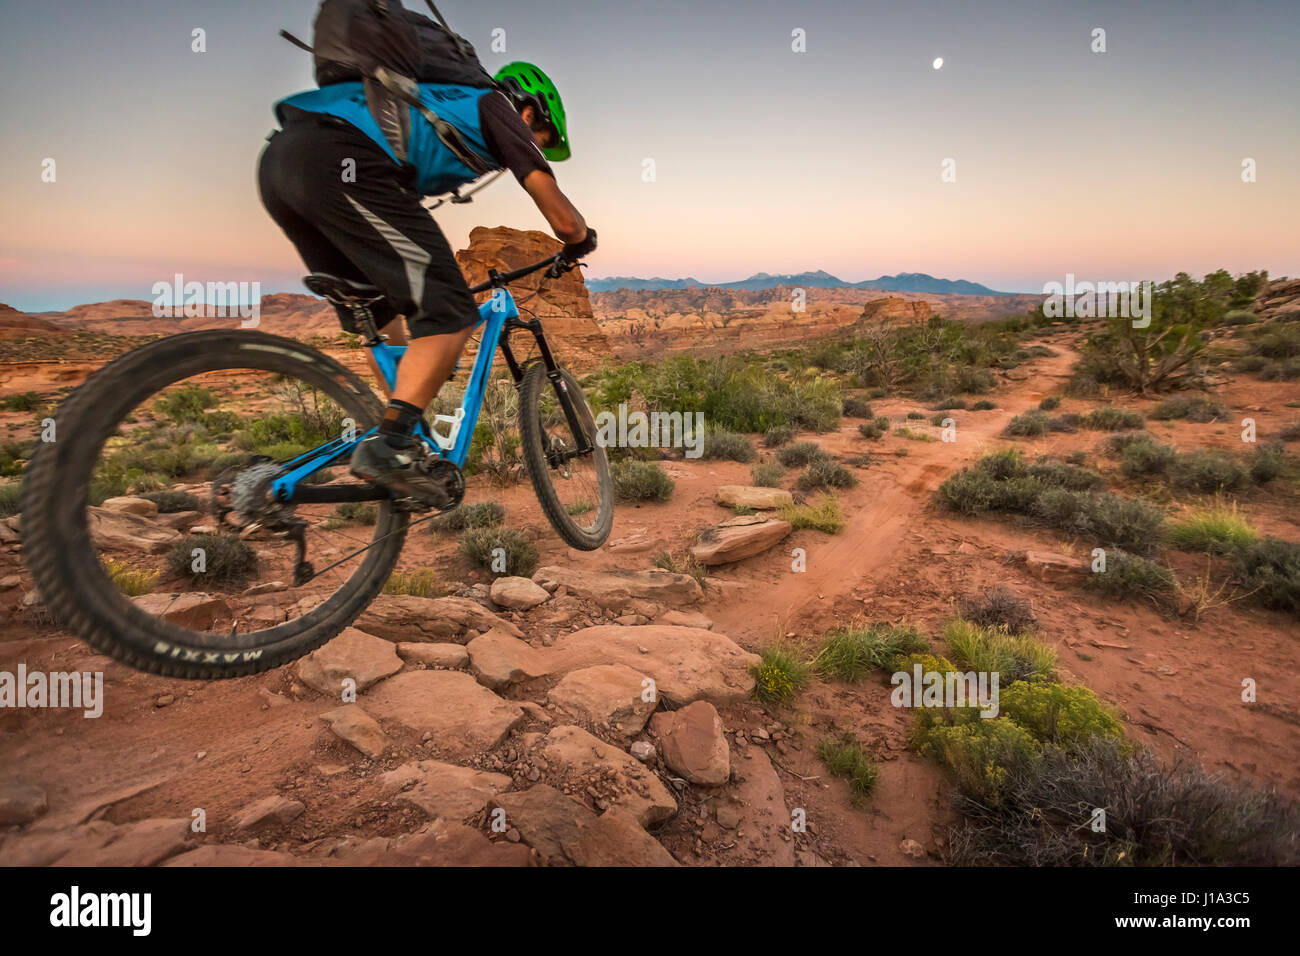 Tyson Swasey mountian biking on the Hymasa trail, Moab, Utah. - Stock Image